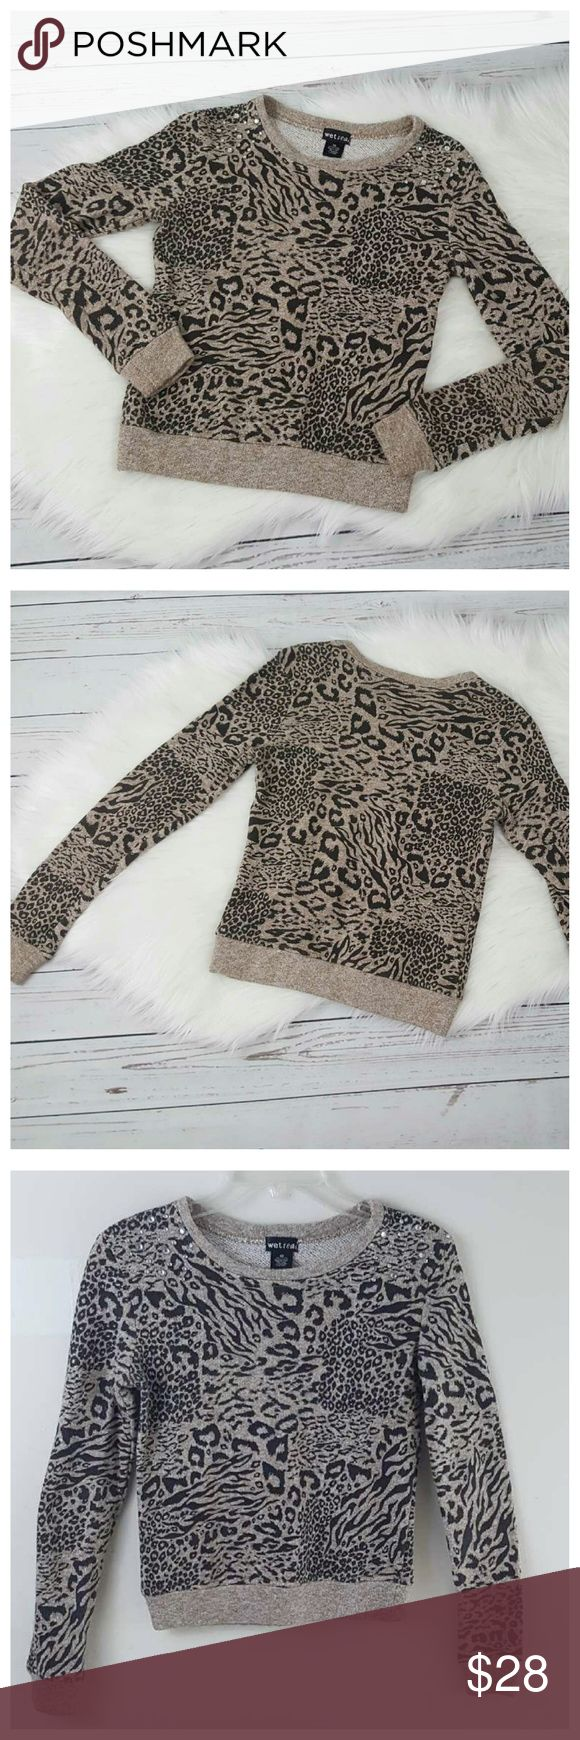 The 25 best animal print hoodies ideas on pinterest pink leopard animal print cozy sweatshirt top bling xs bankloansurffo Choice Image